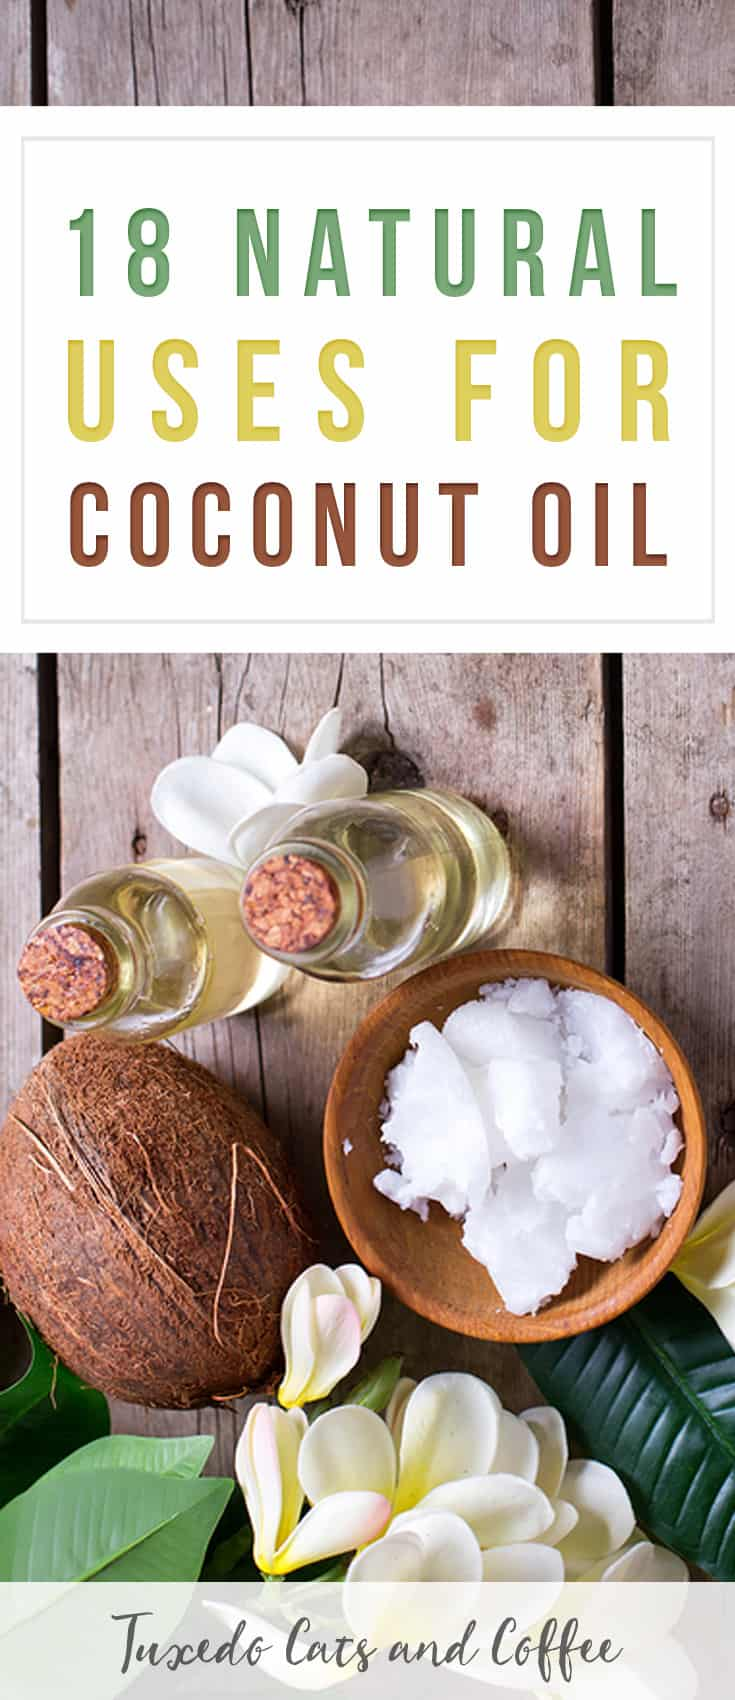 Coconut oil is an awesome multi-tasking natural oil that can be used as food, in beauty products and regimens, and even in your home in so many different ways! Here are 18 natural uses for coconut oil.